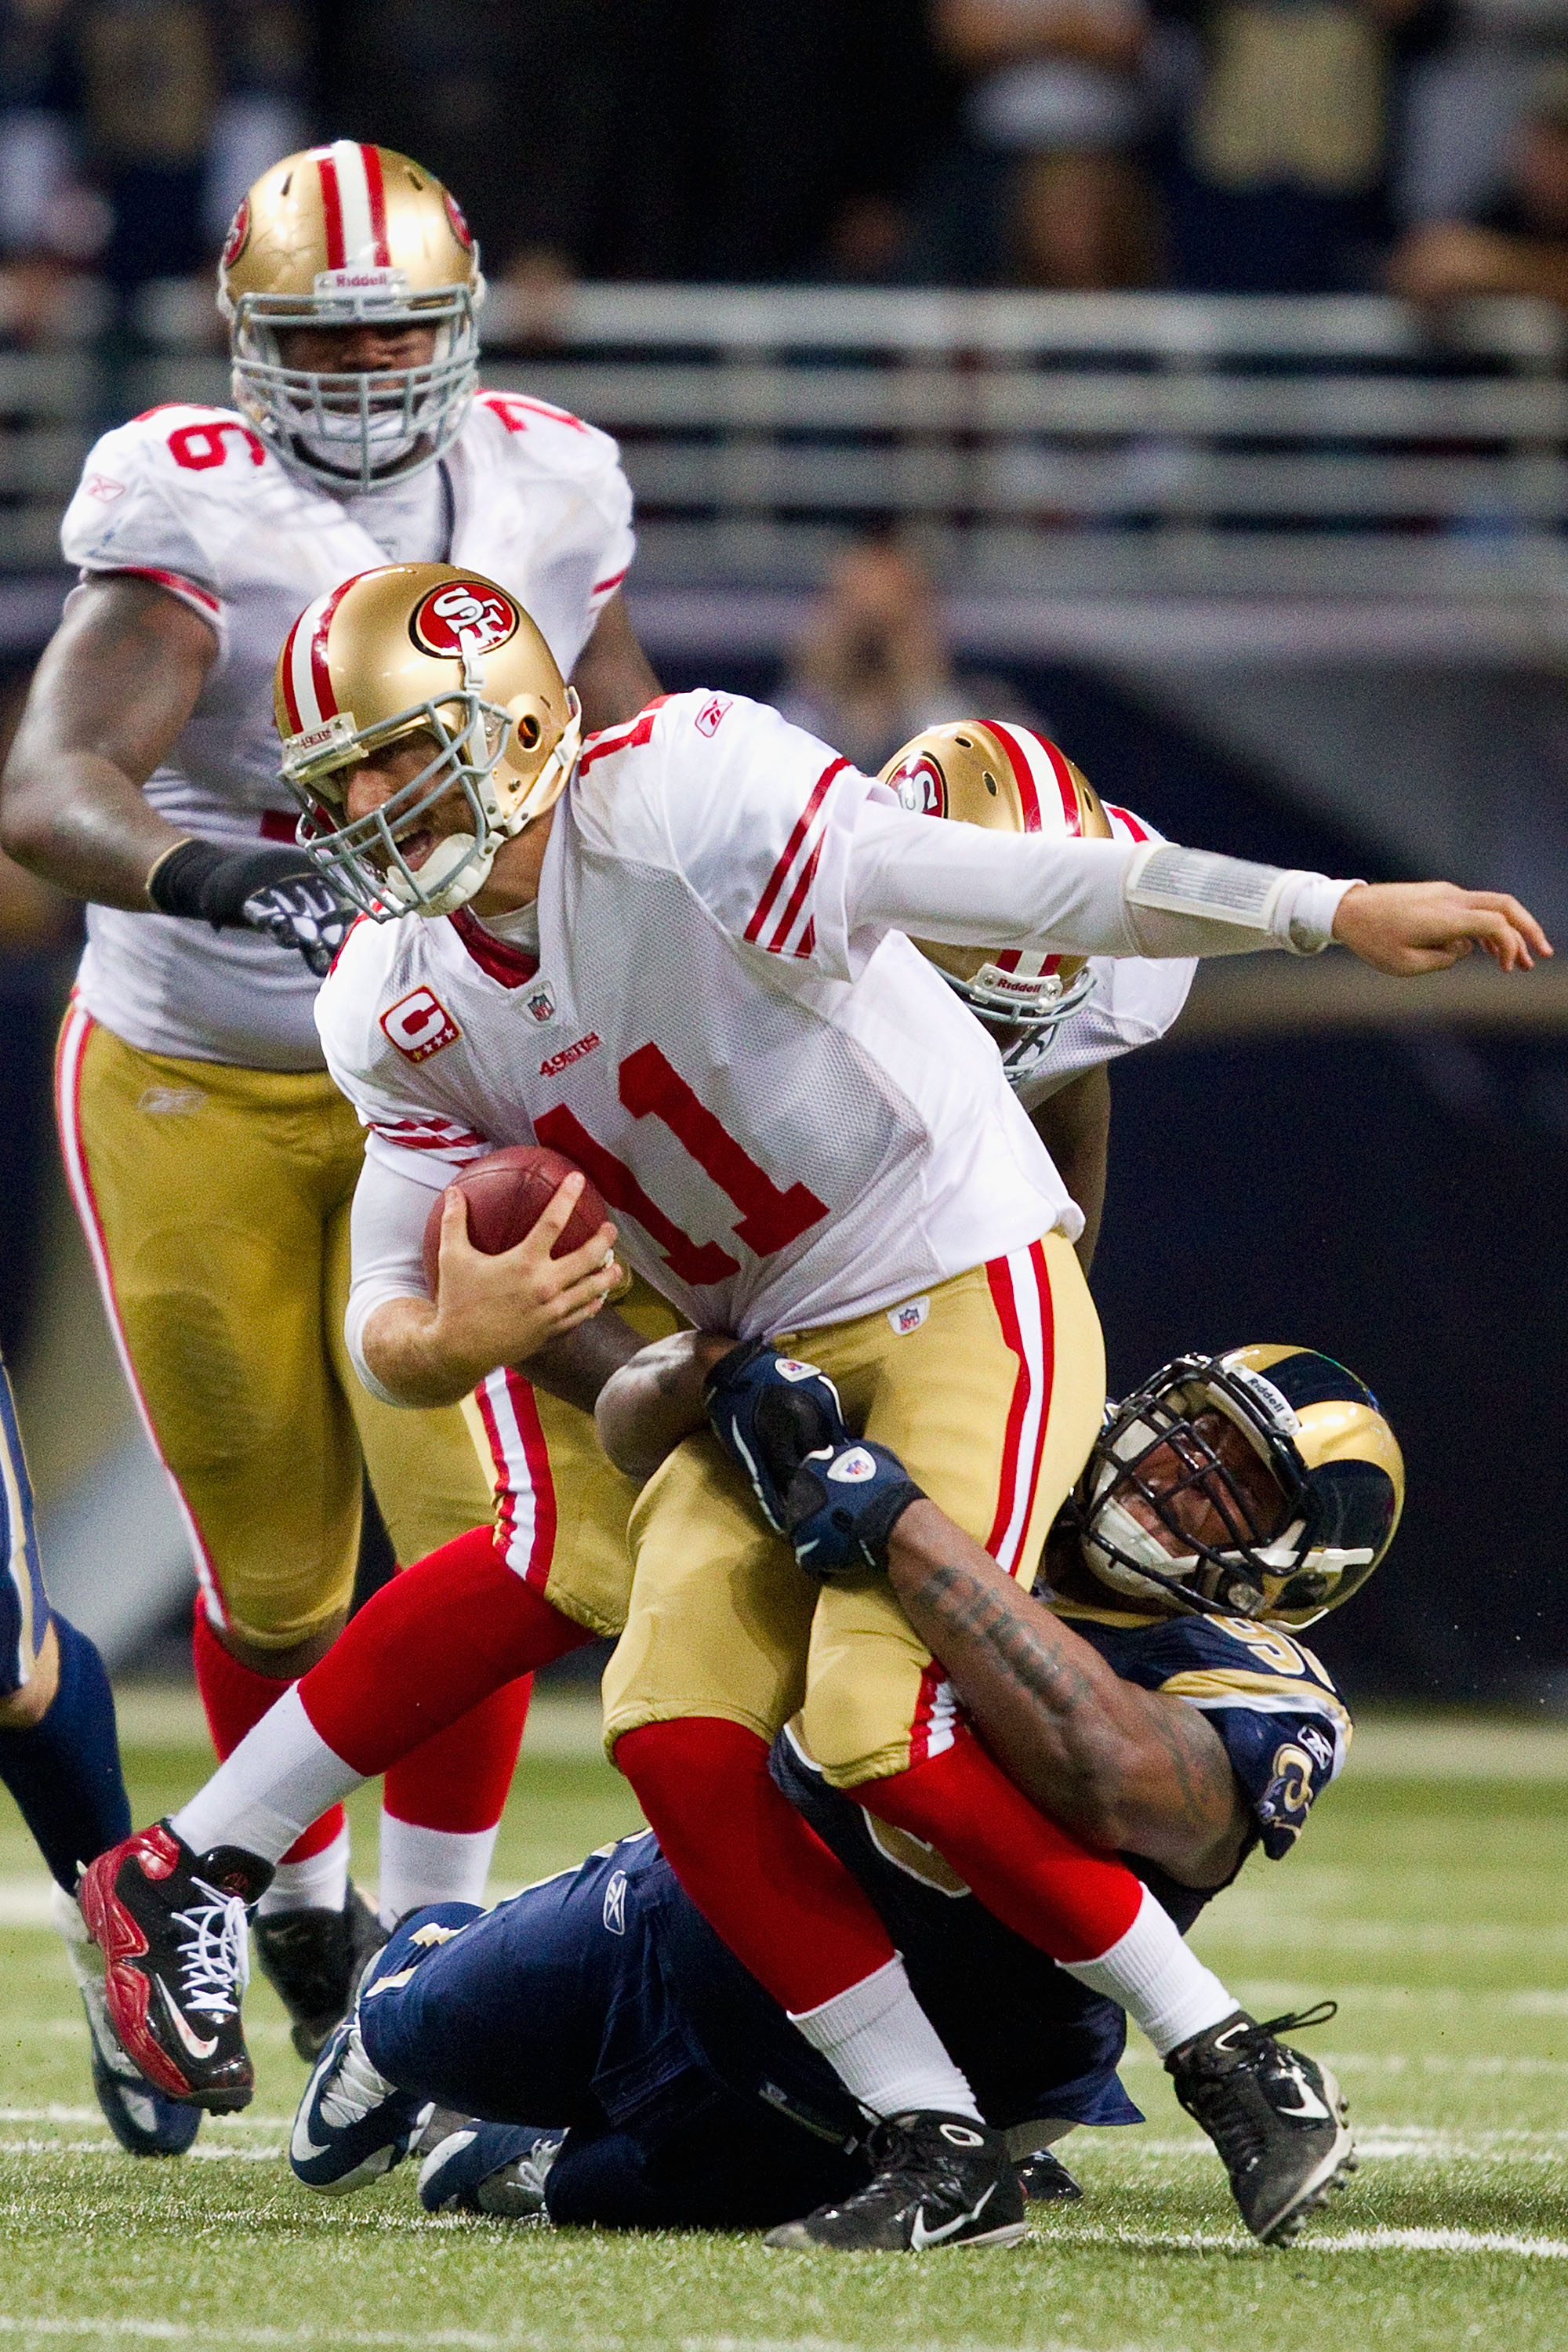 ST. LOUIS, MO - DECEMBER 26: Fred Robbins #98 of the St. Louis Rams sacks Alex Smith #11 of the San Francisco 49ers at the Edward Jones Dome on December 26, 2010 in St. Louis, Missouri. The Rams beat the 49ers 25-17. (Photo by Dilip Vishwanat/Getty Images